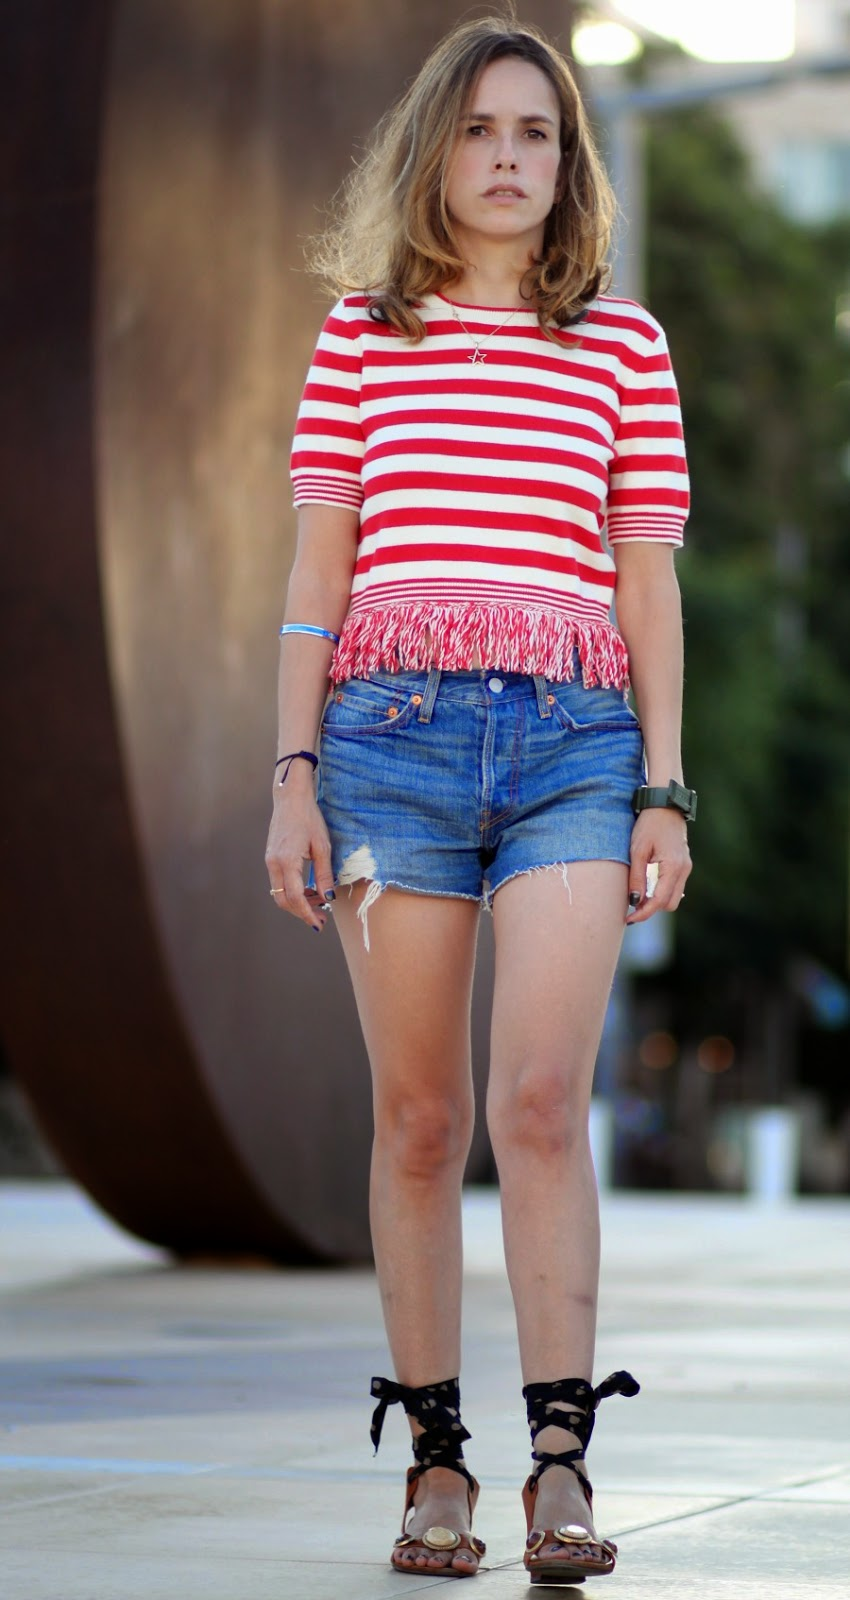 501, levi's, shortdenims, style, lookoftheday, stripes, fashionblog, bradpiit, אופנה, בלוגאופנה